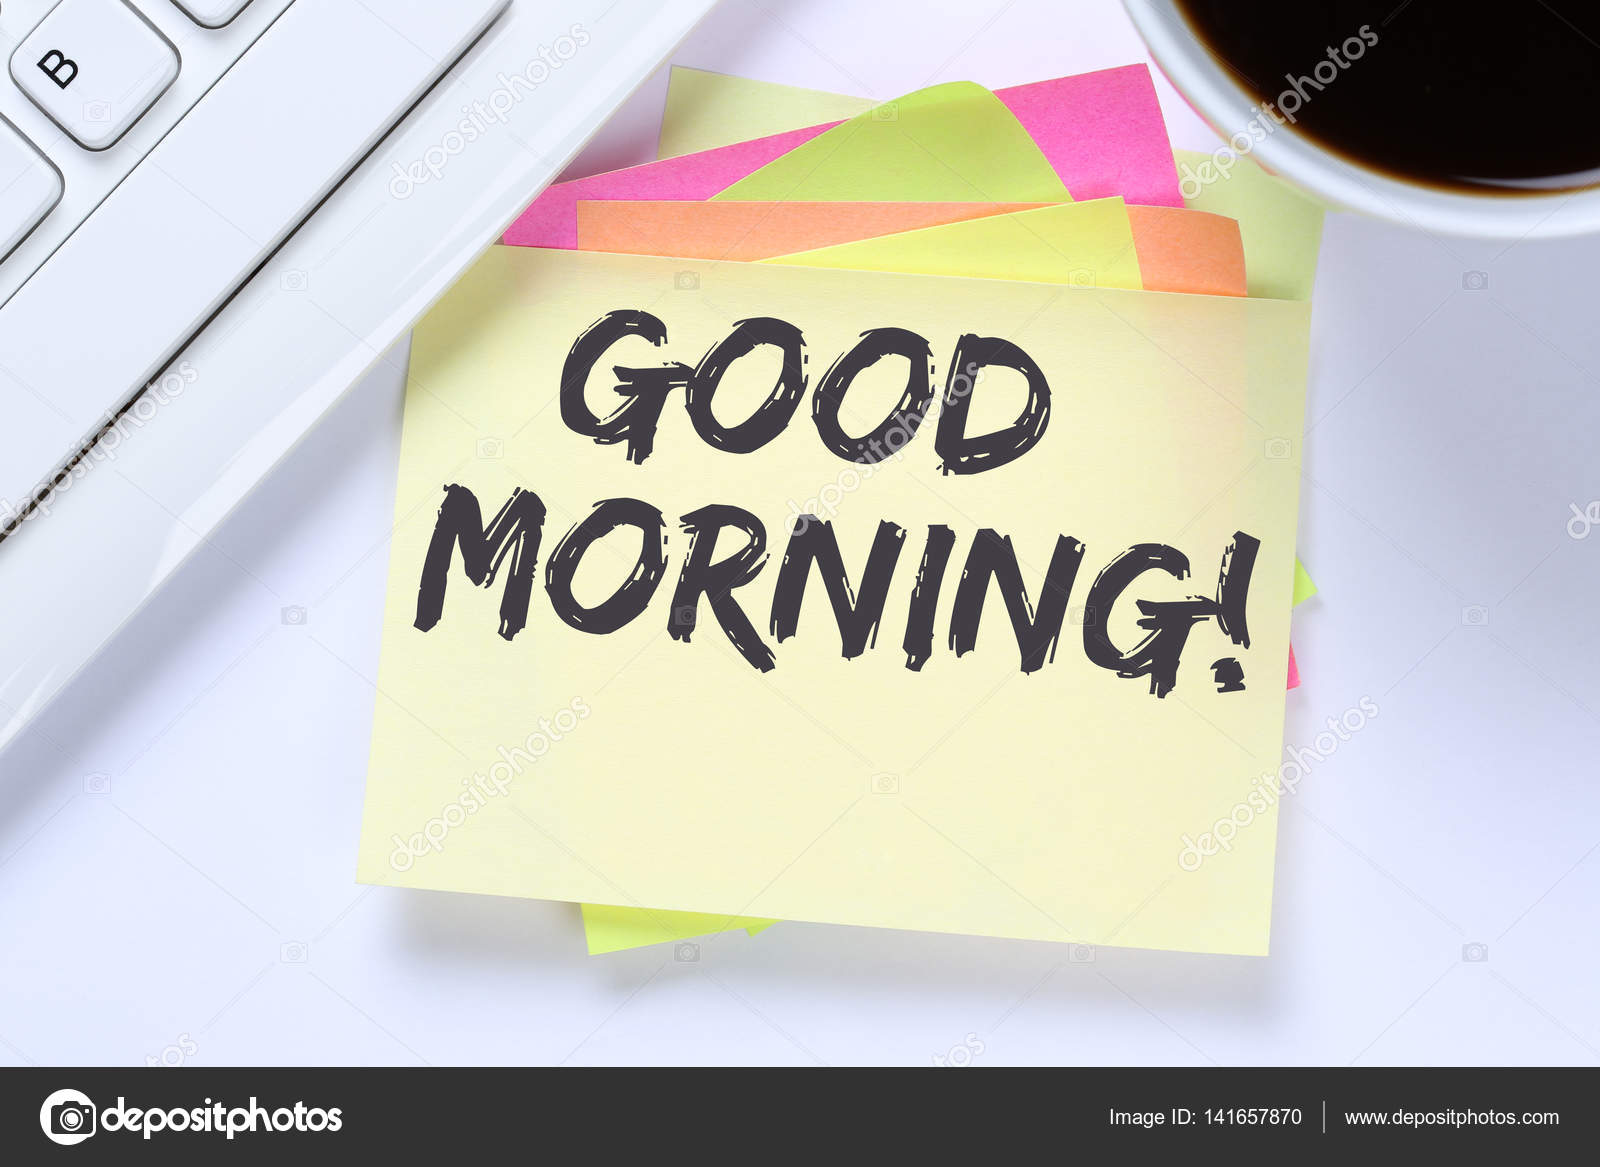 Good morning hello greeting welcome message business desk stock good morning hello greeting welcome message business desk stock photo kristyandbryce Images